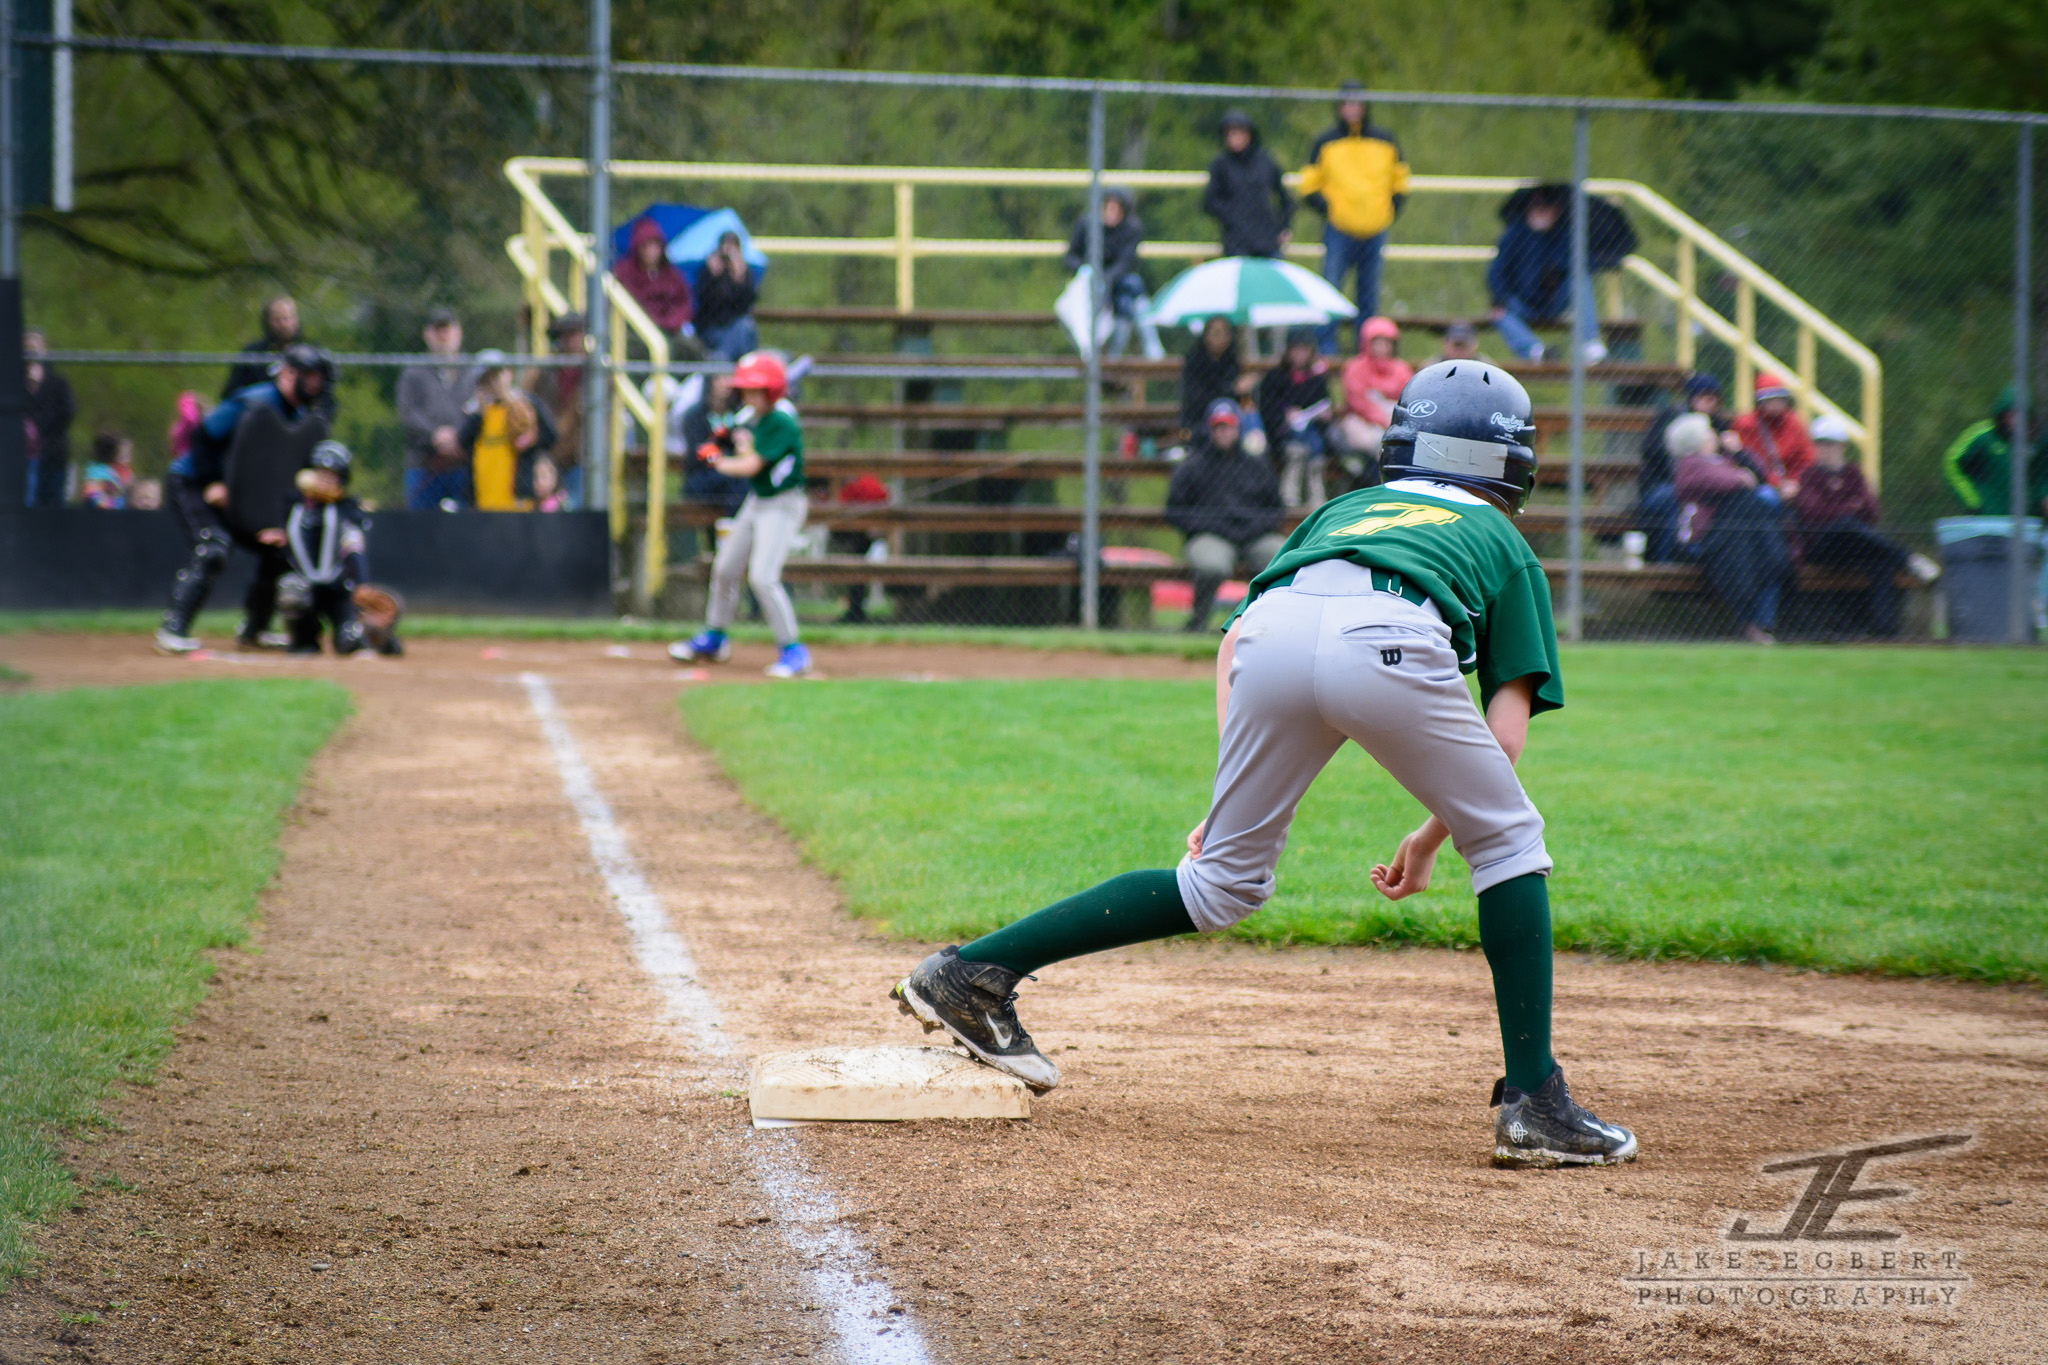 FB - 2014-04-05 - GreenSox - 19503.jpg